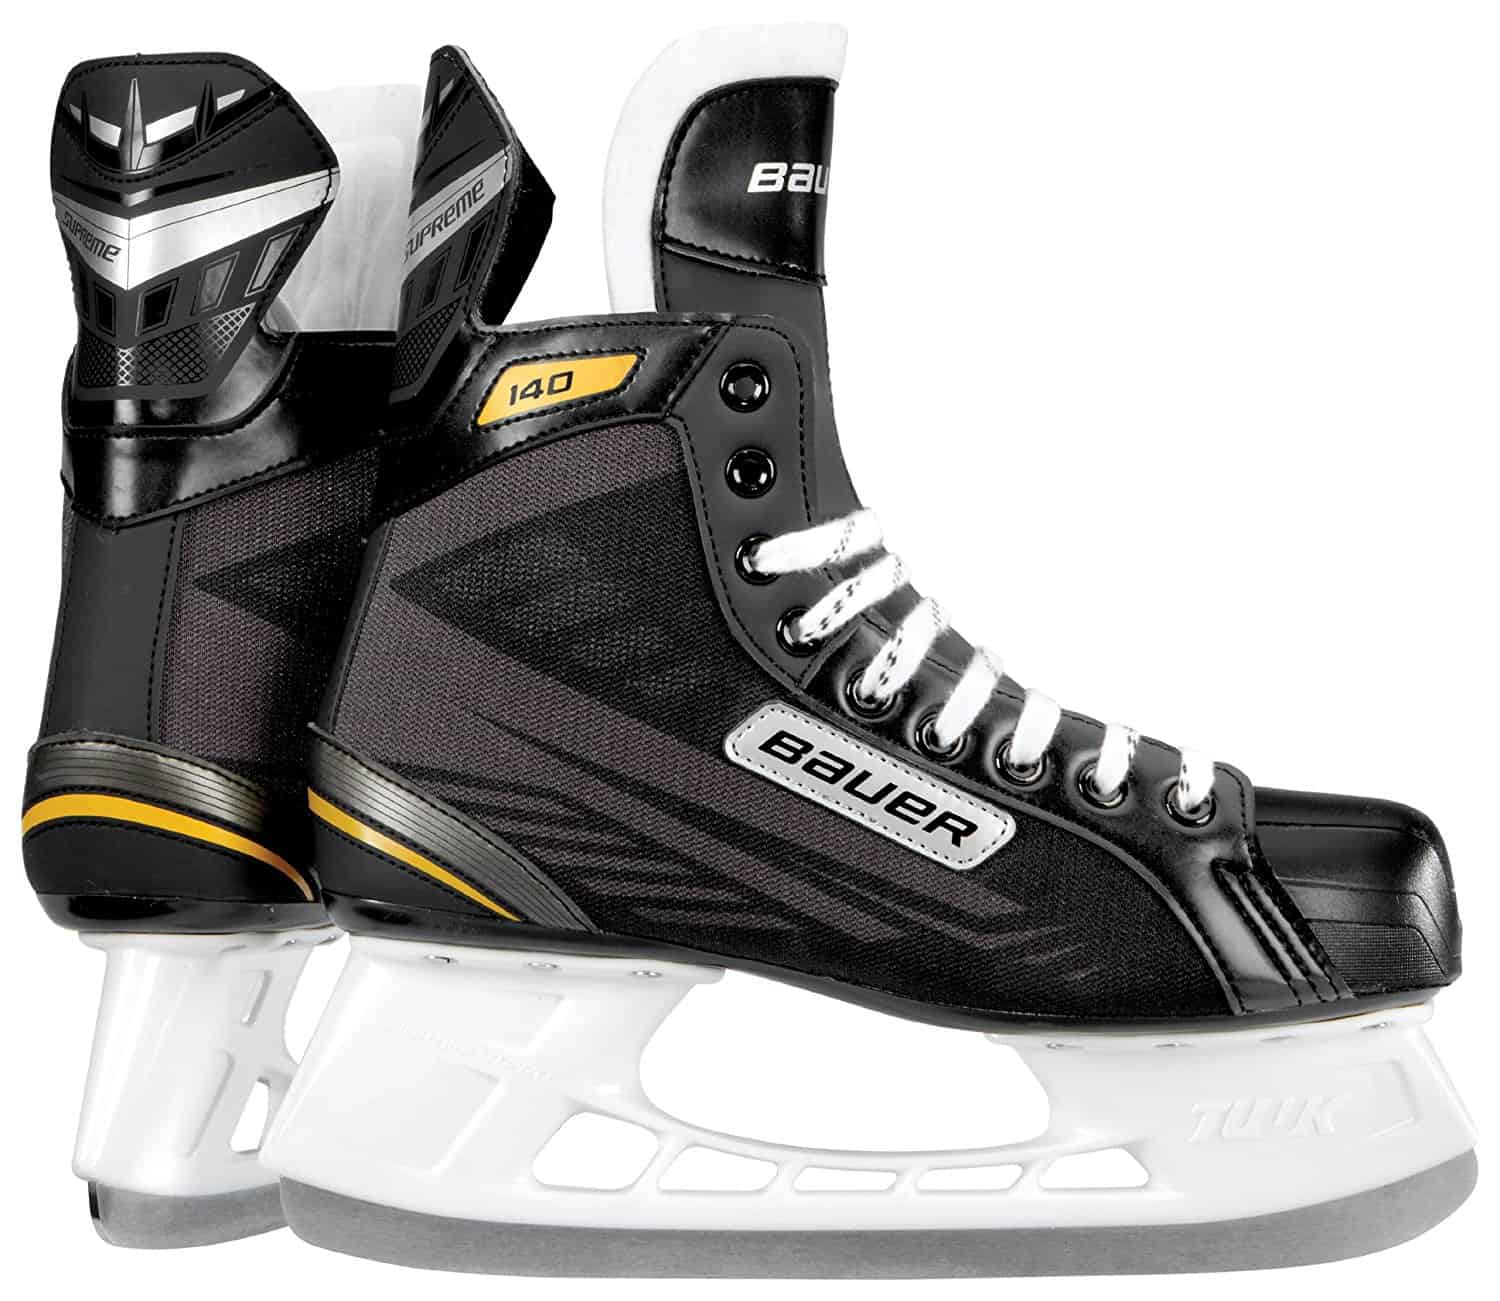 37b4f4209e4 Top 15 Best Hockey Skates Reviews – In-depth Comparison 2019